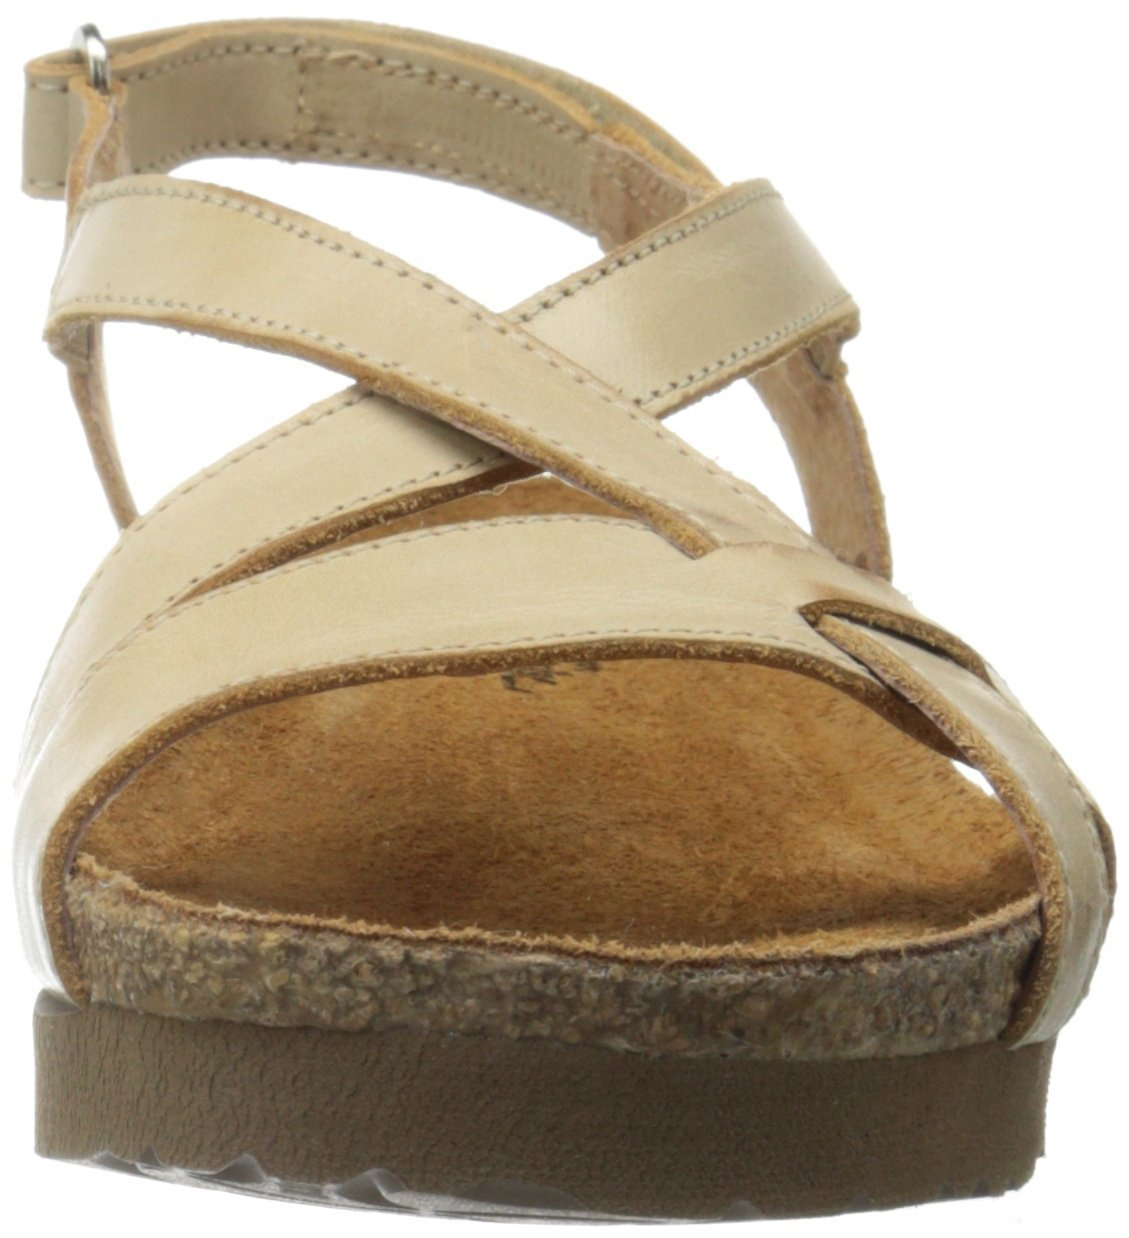 Naot Women's Bernice Wedge Sandal, Biscuit Leather, 35 EU/4.5-5 M US by NAOT (Image #4)